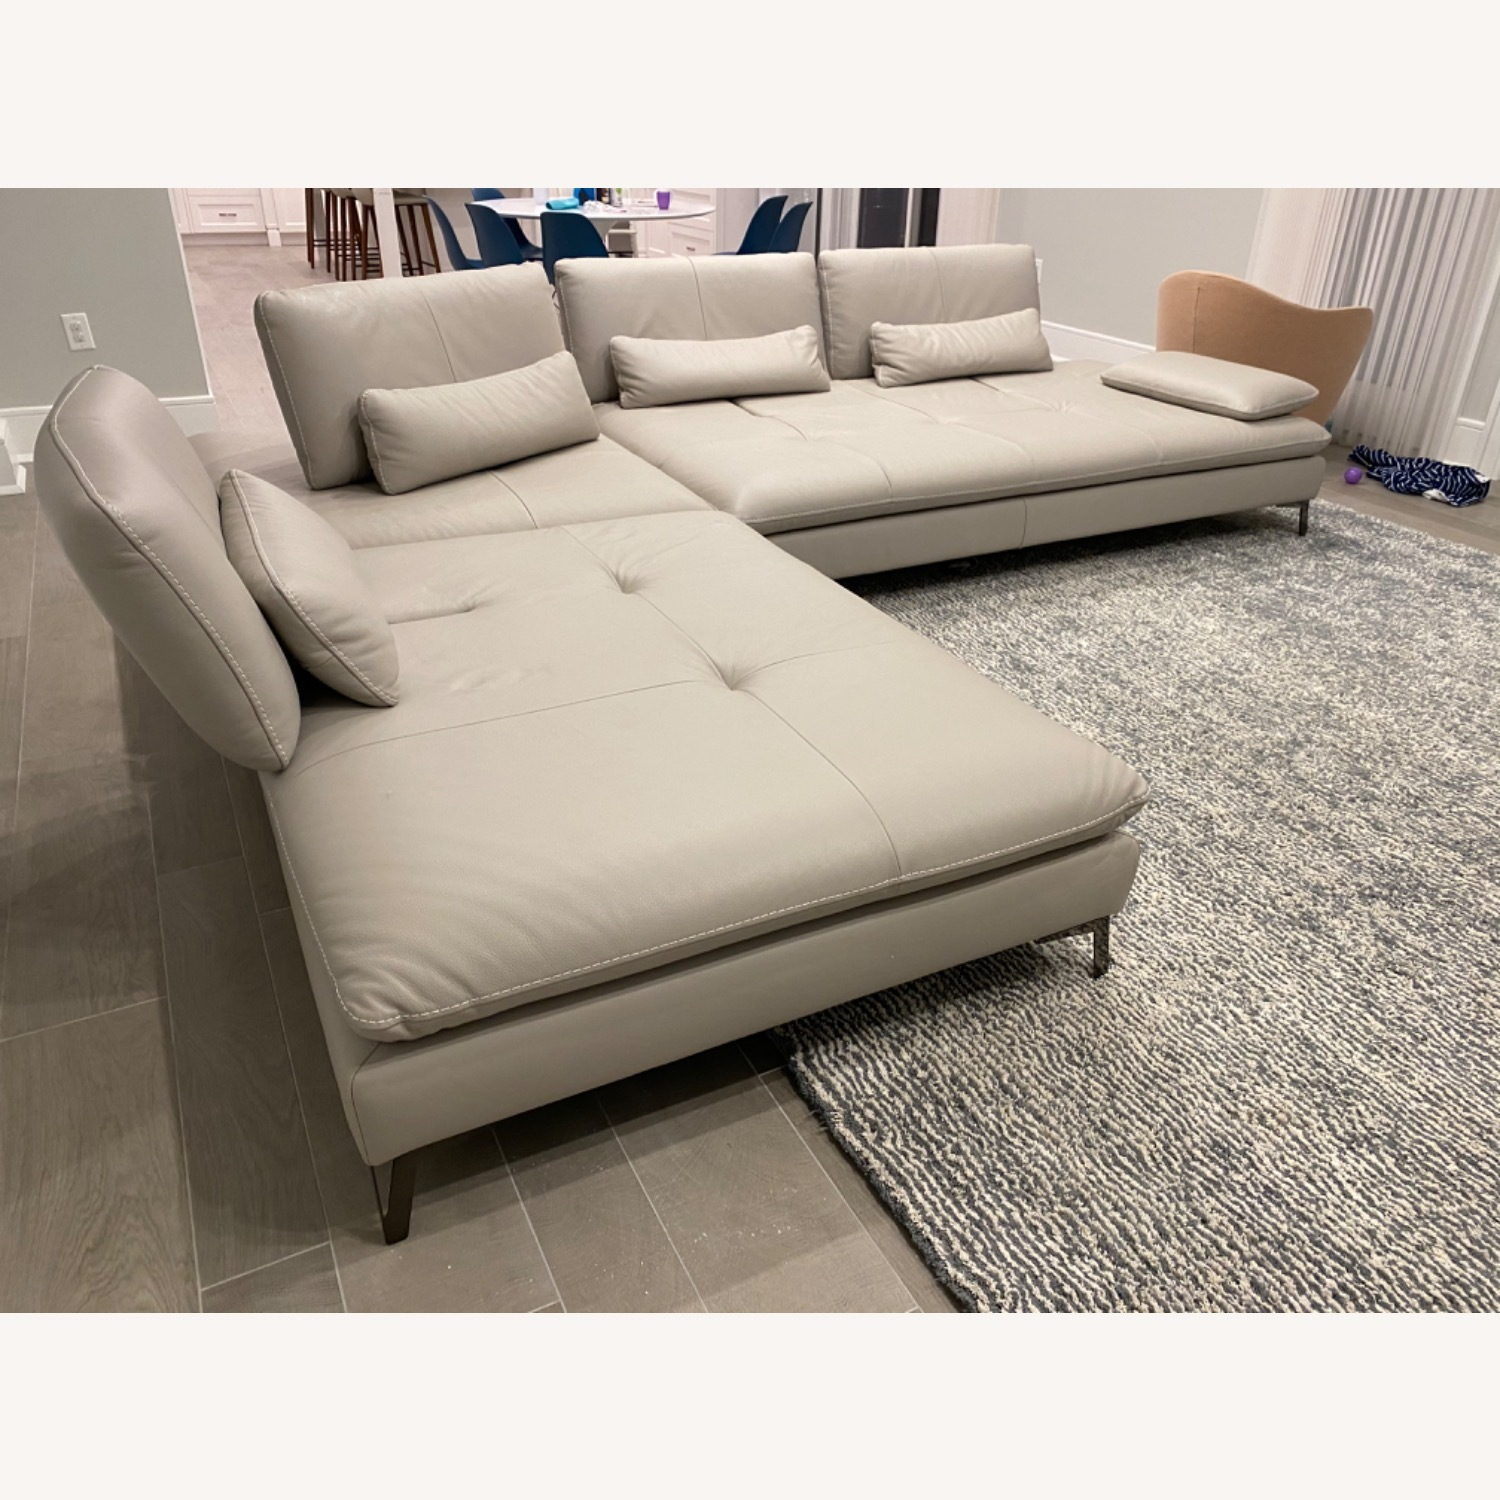 Roche Bobois Leather Sectional - image-2